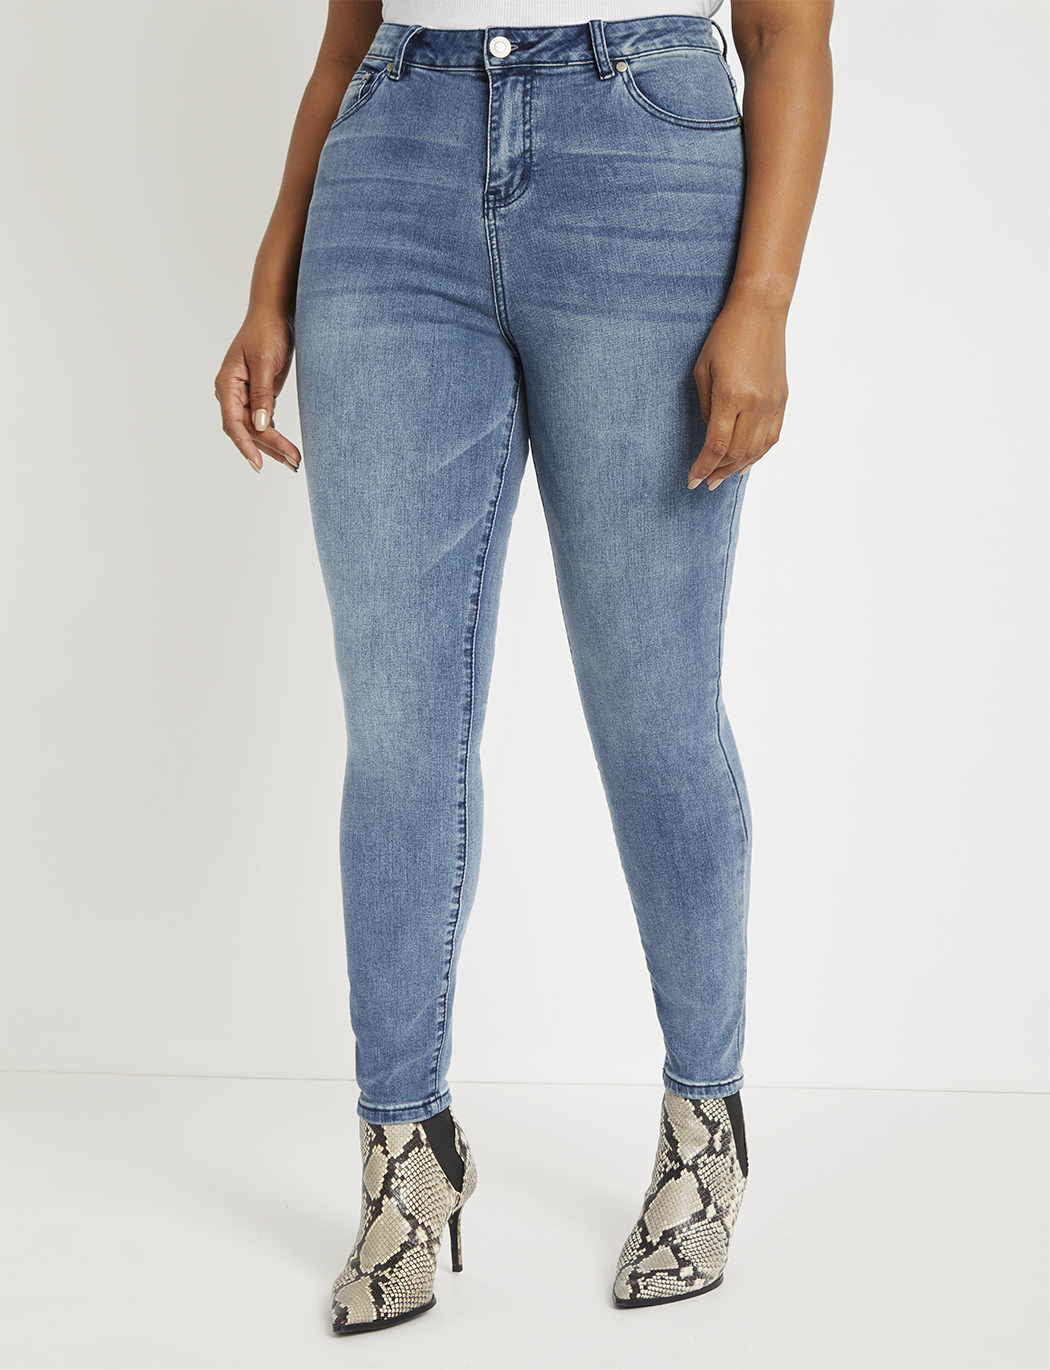 Gena Fit Olivia Sculpting Skinny Jean